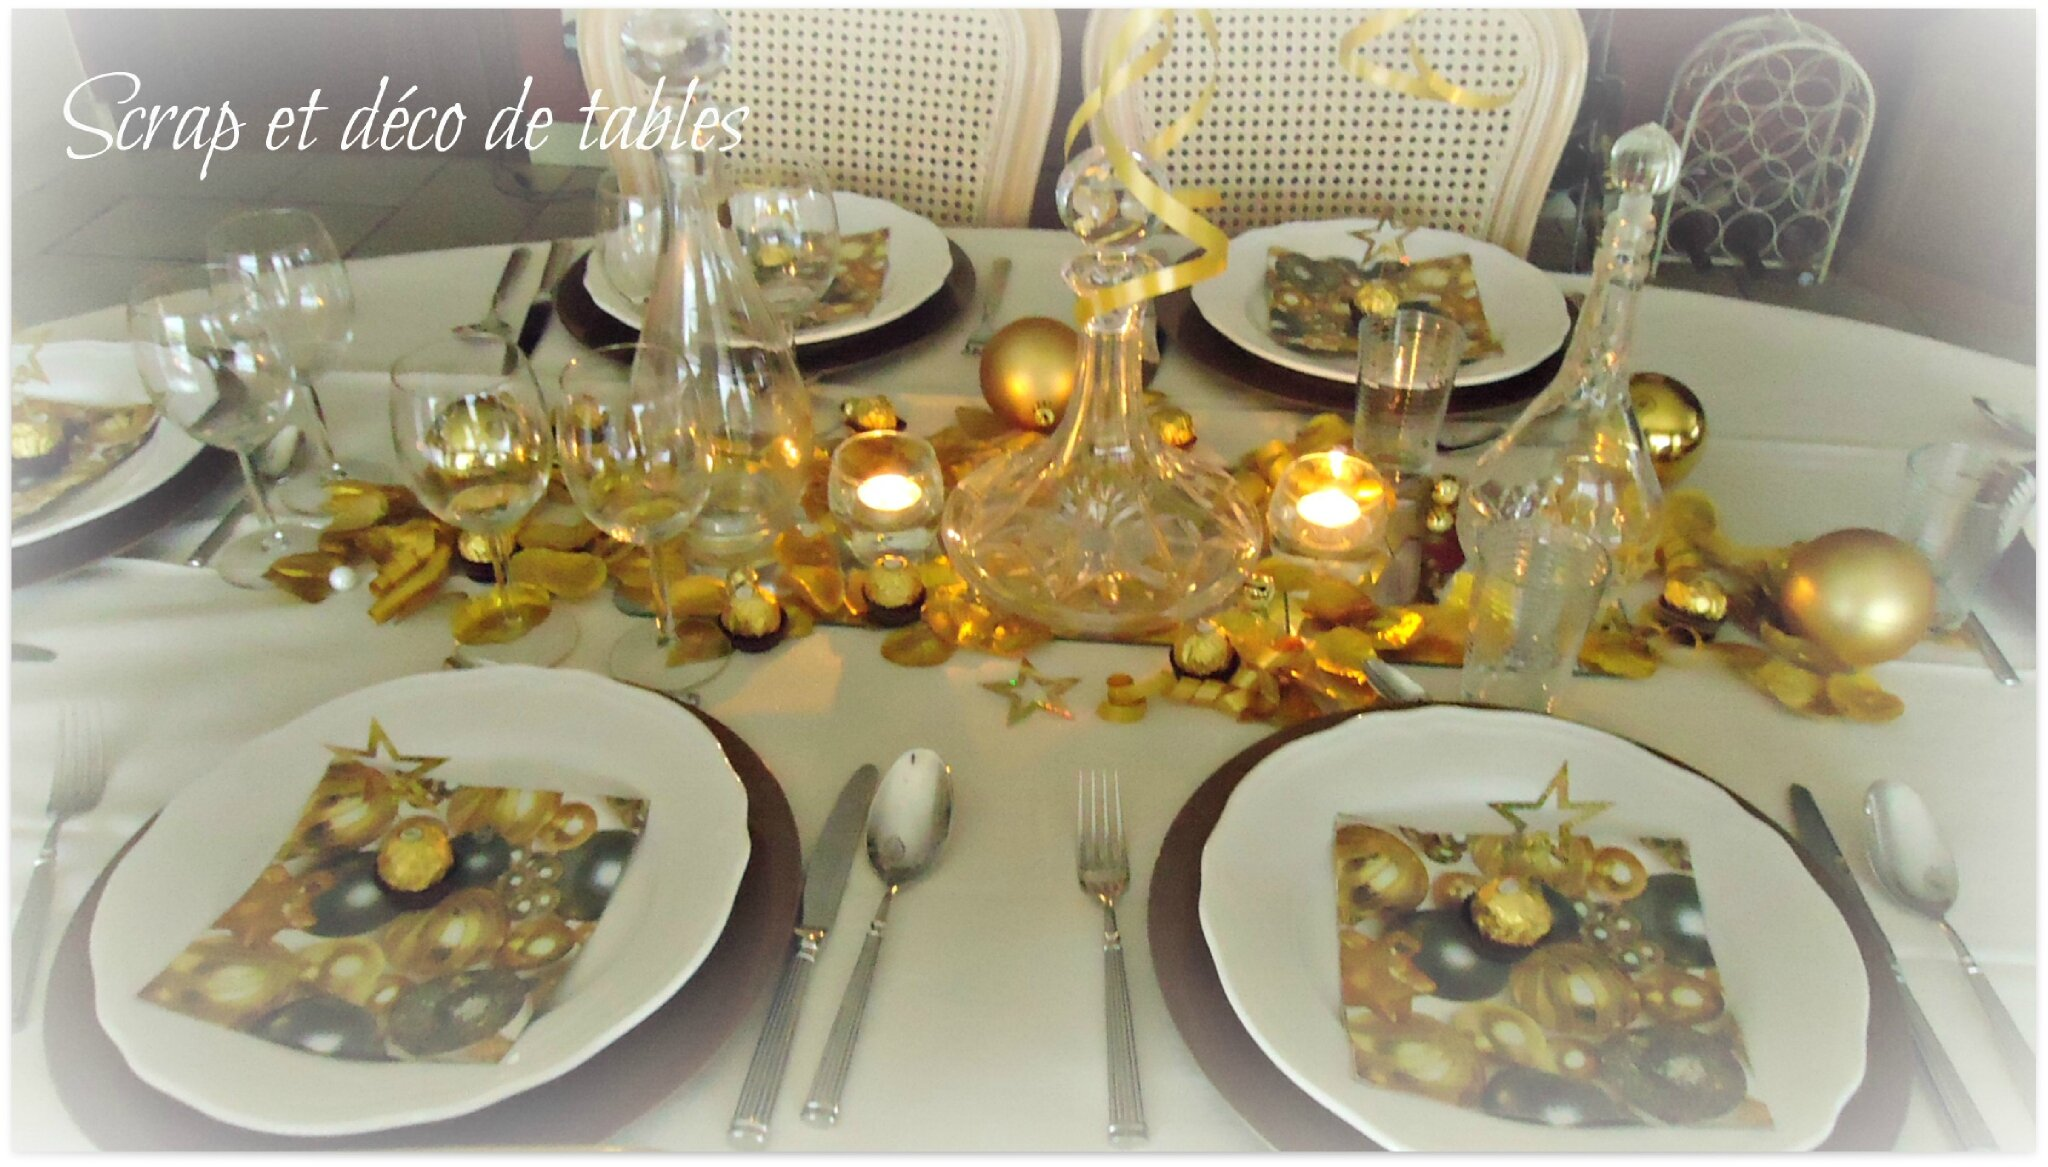 Deco table nouvel an - Deco reveillon nouvel an ...